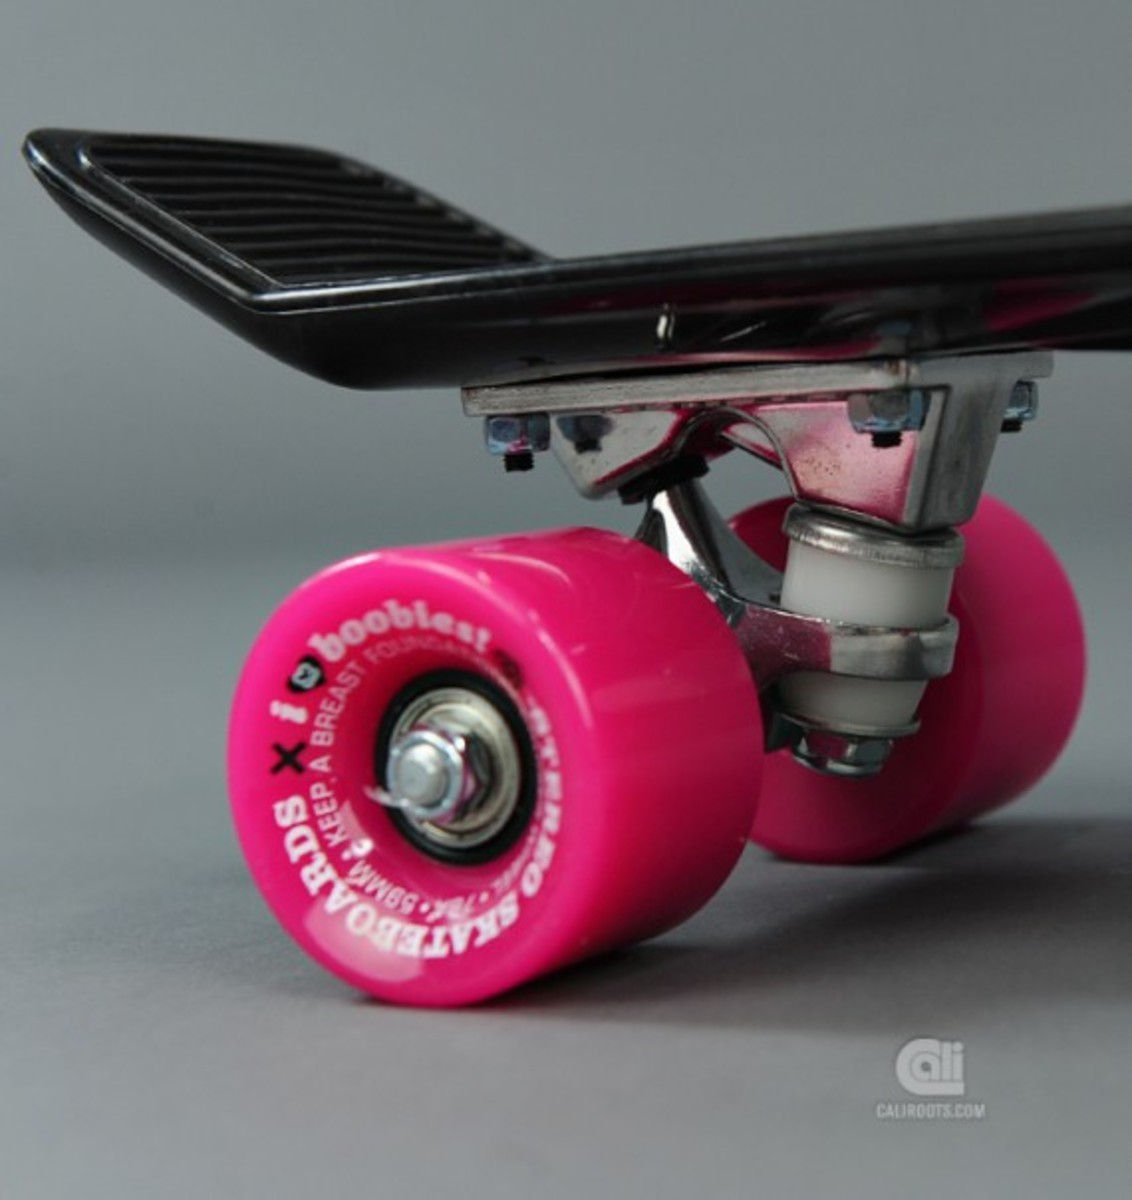 stereo-keep-a-breast-vinyl-cruiser-10